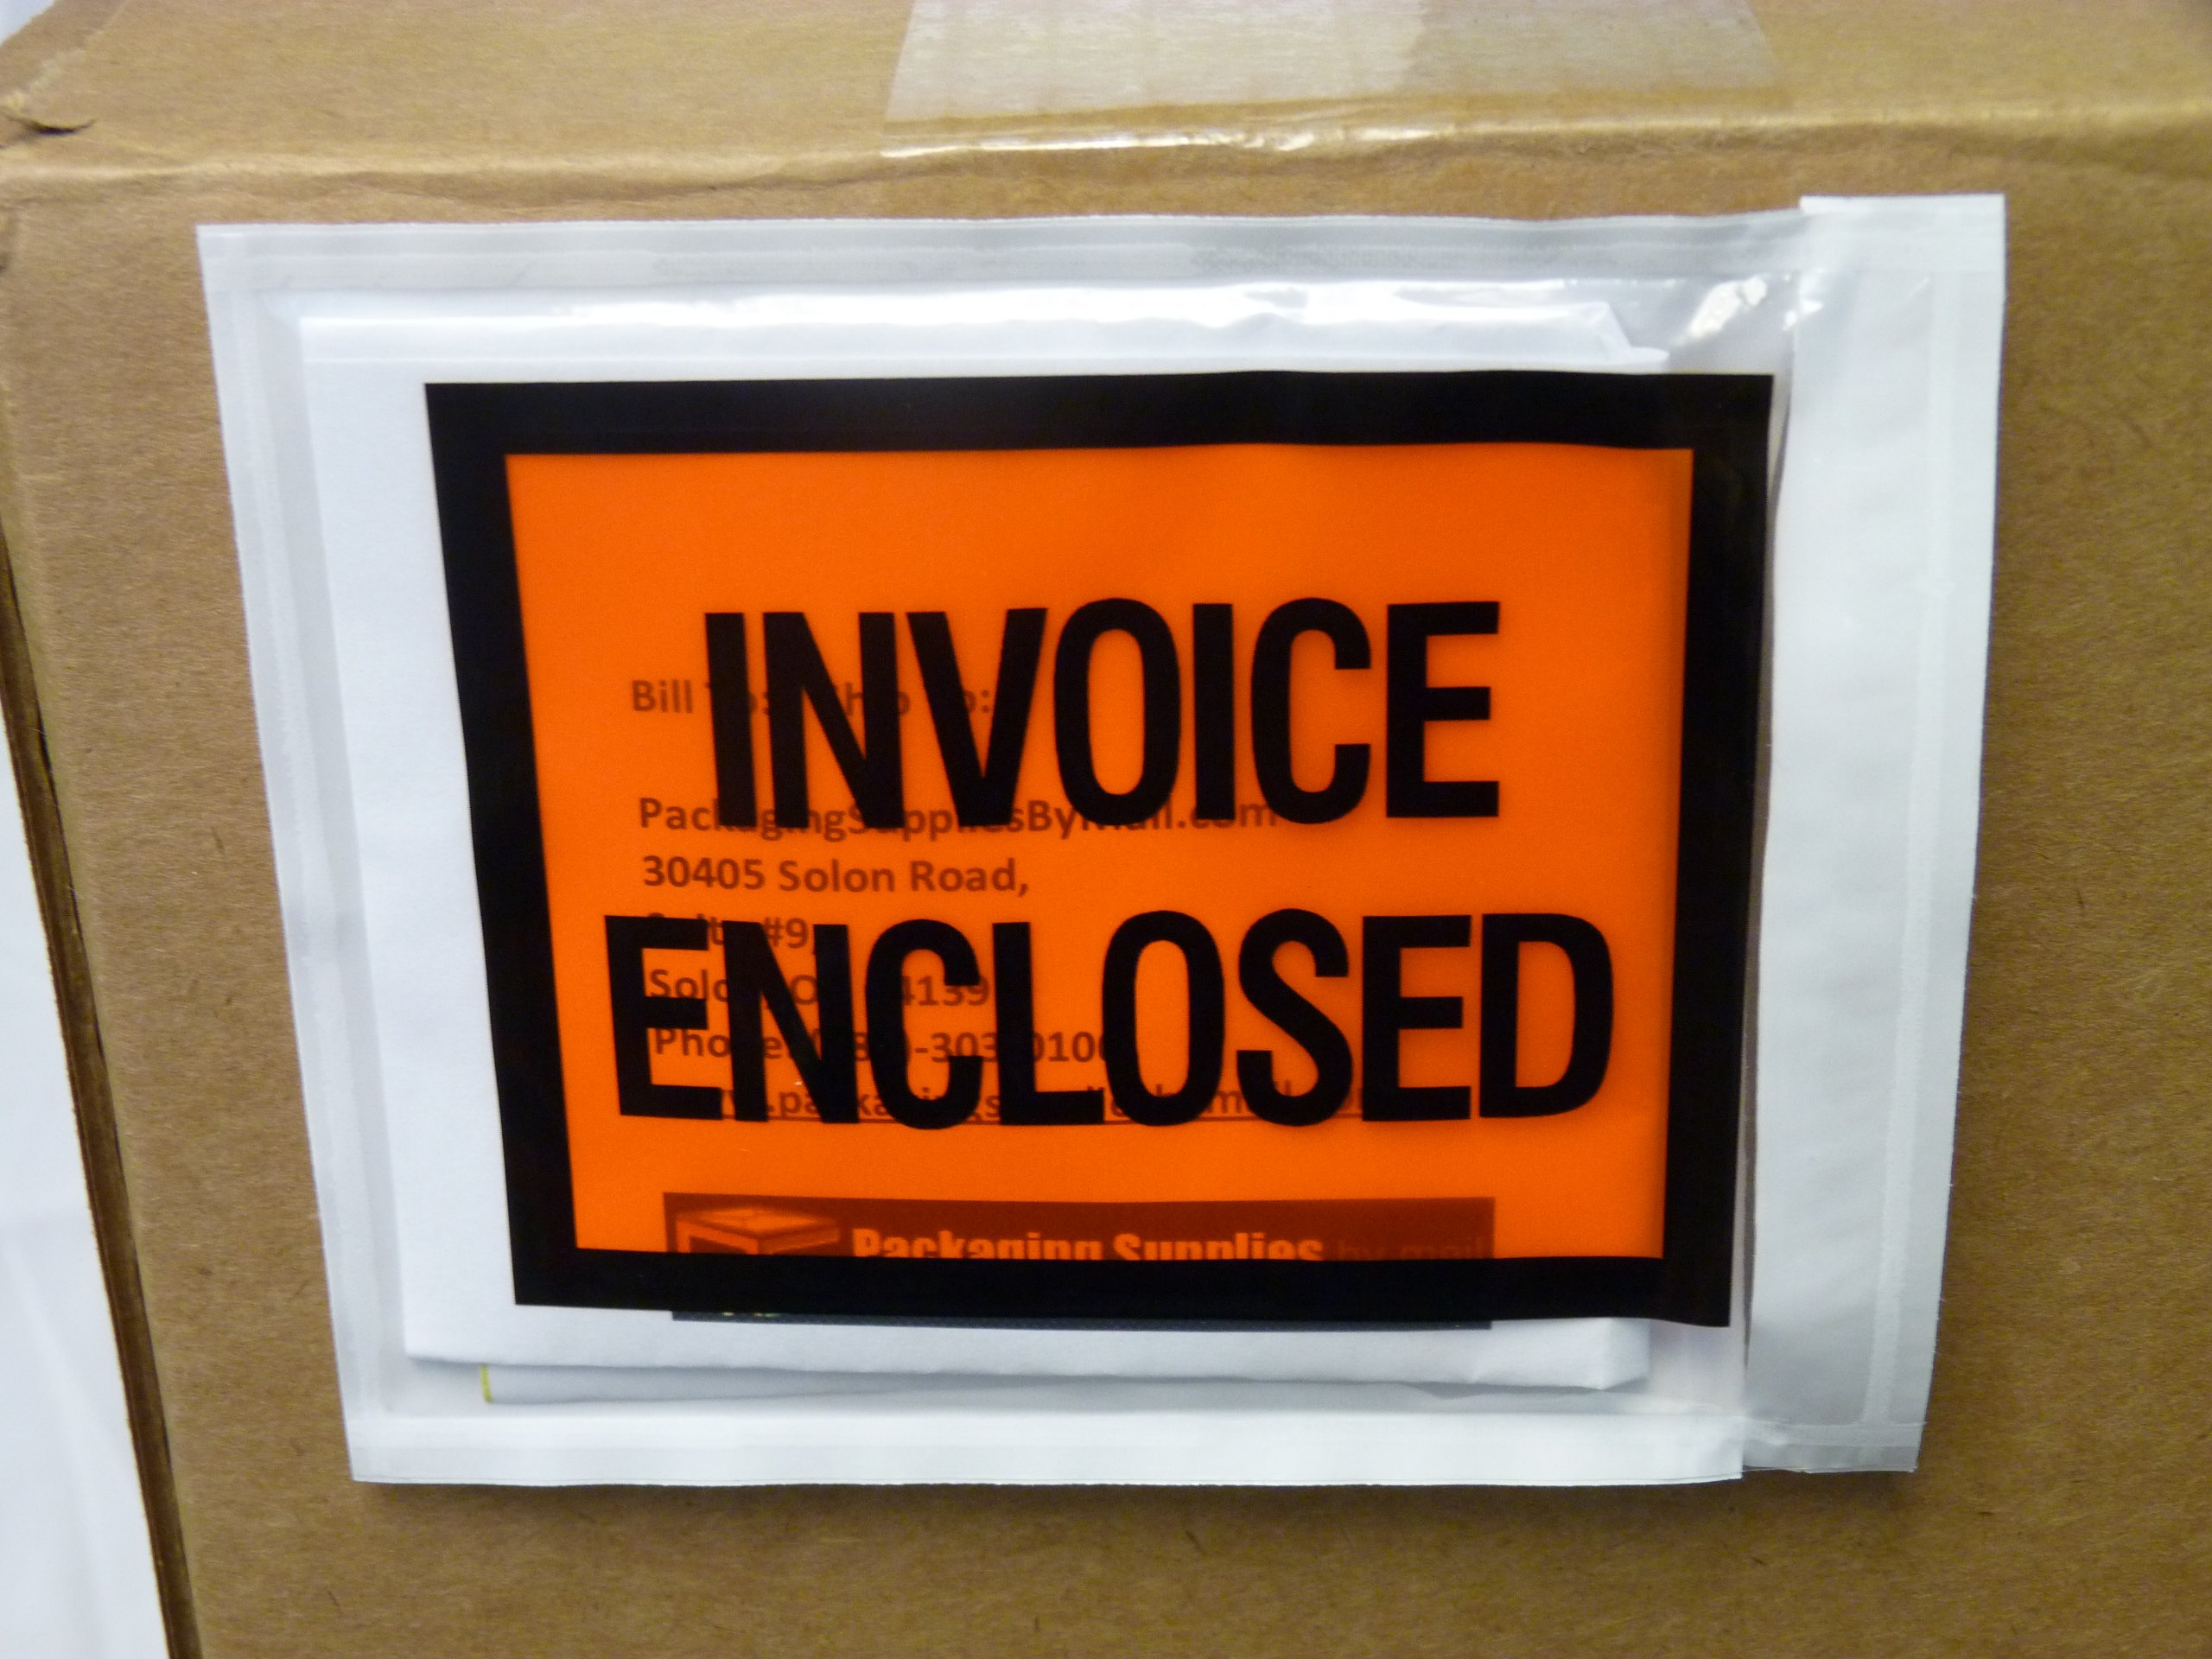 Invoice Enclosed Packing List Envelopes Full Face Back Load 2.0 Mil Thick - 4.5'' X 5.5'' 1000/Case